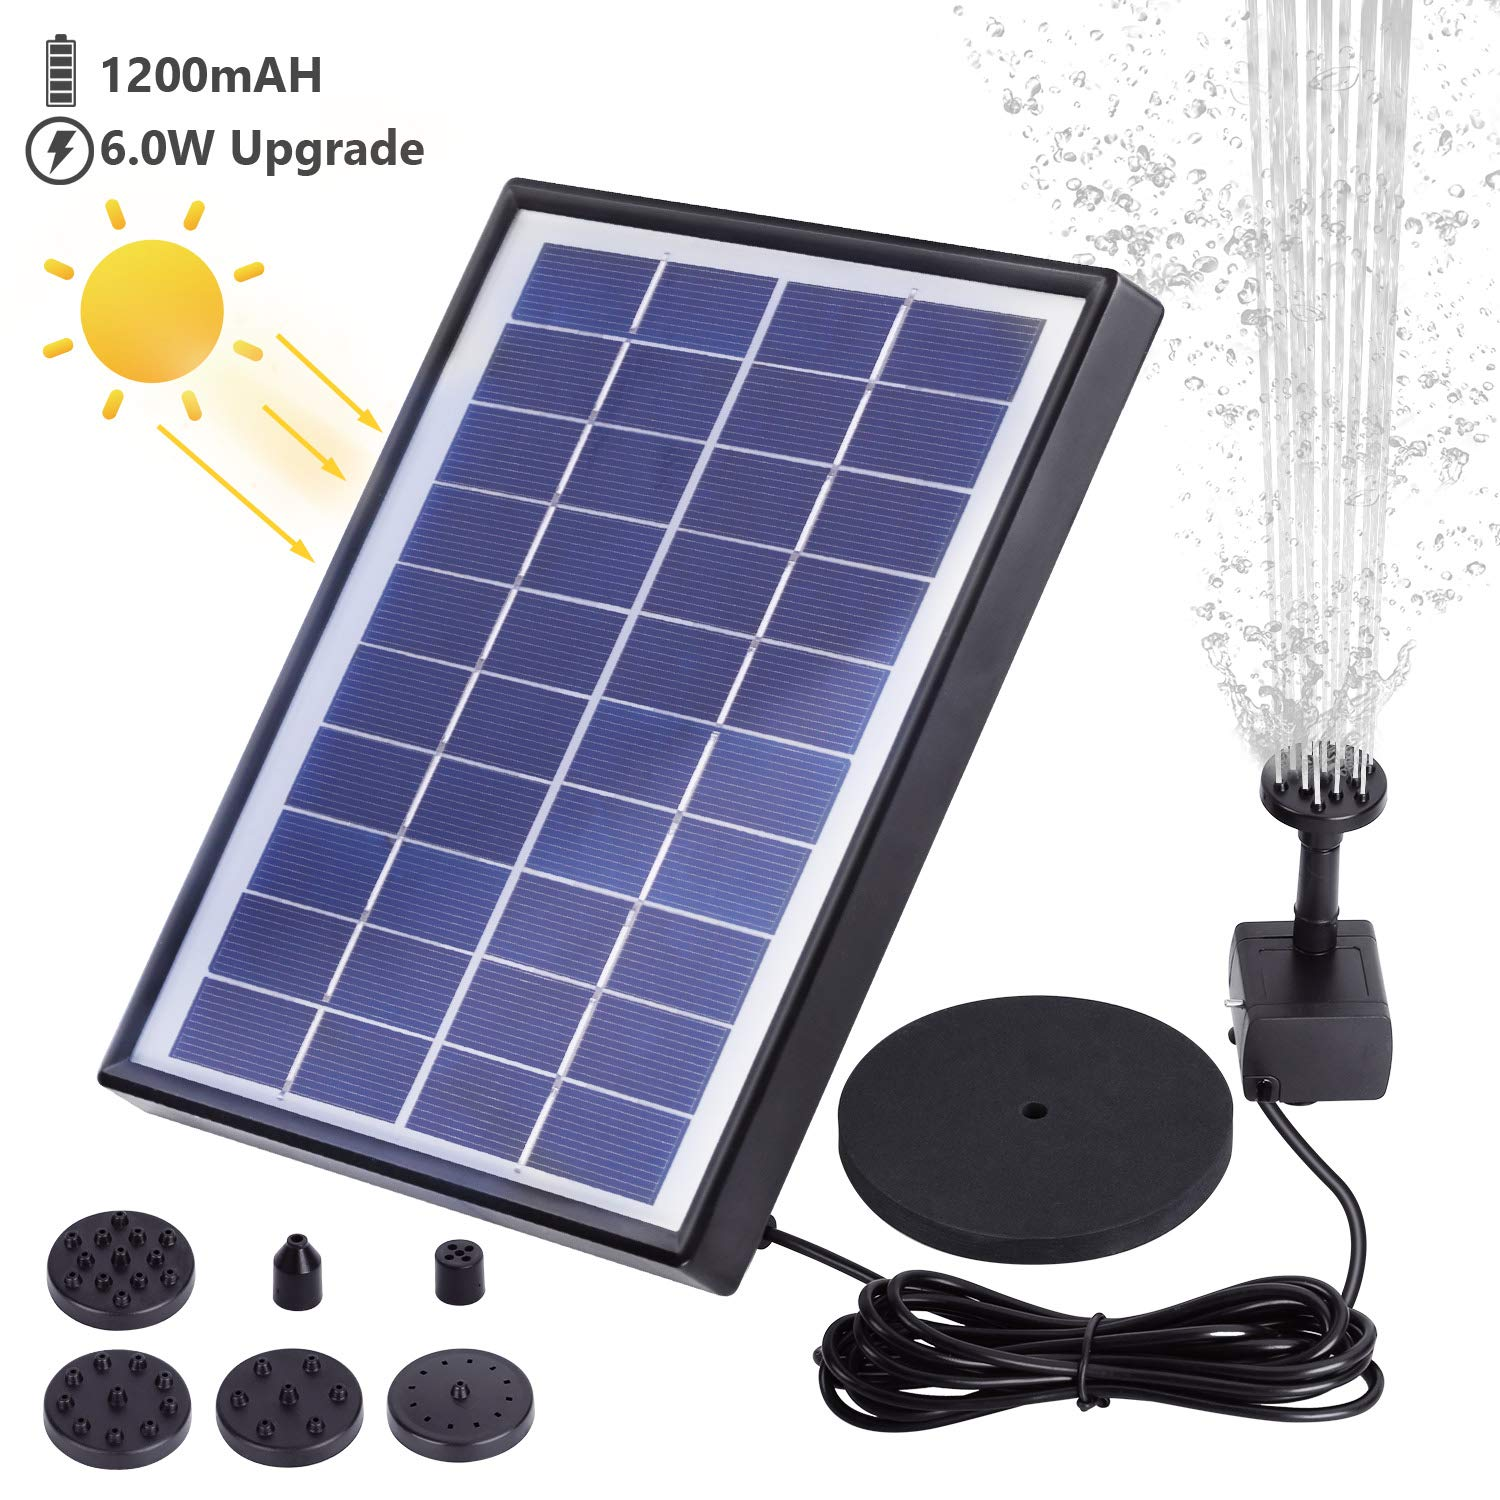 AISITIN 6.0W Solar Fountain Pump, Solar Water Pump Floating Fountain Built-in 1000mAh Battery, with 6 Nozzles, for Bird Bath, Fish Tank, Pond or Garden Decoration Solar Aerator Pump